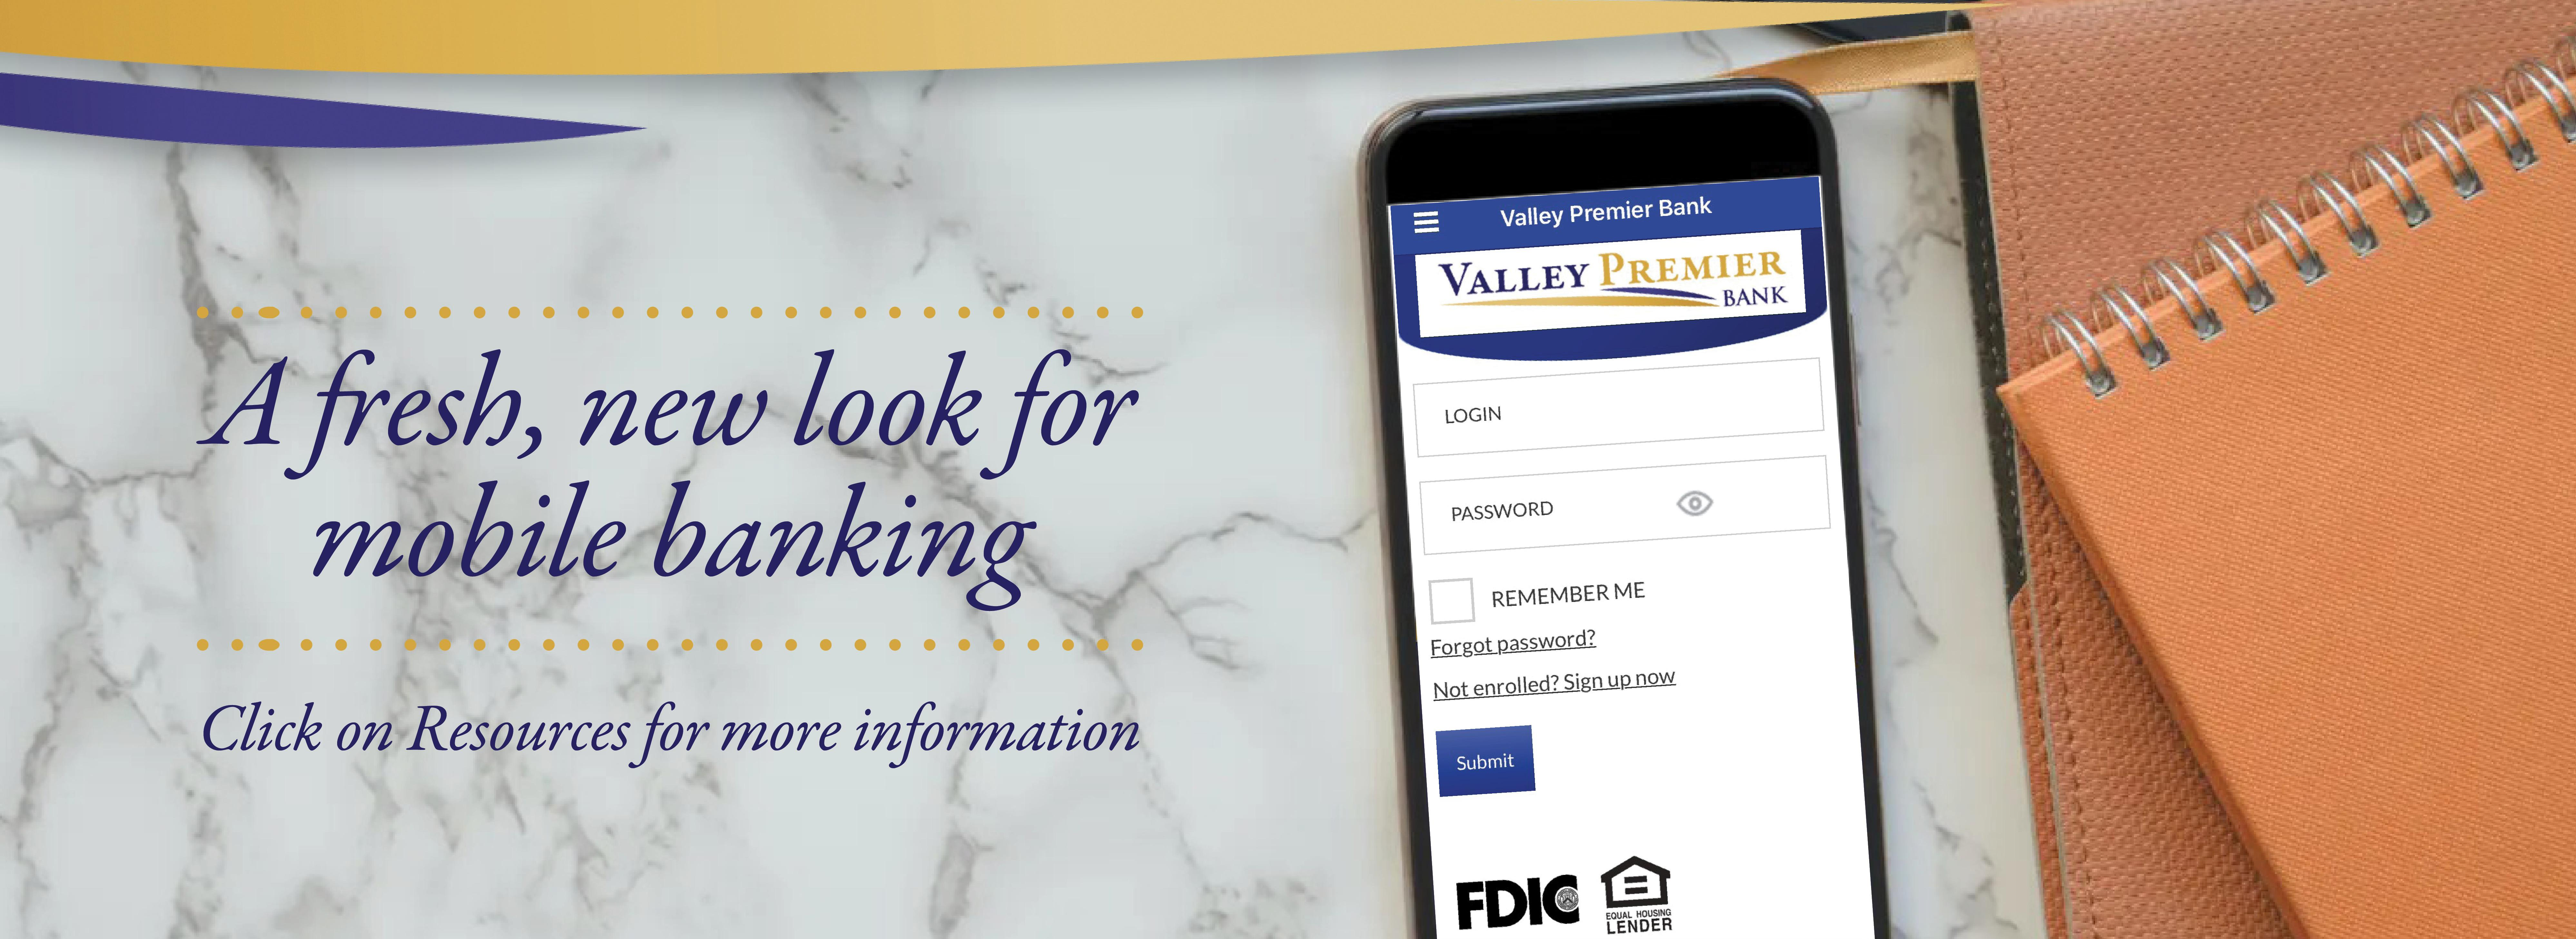 A fresh, new look for mobile banking - Click on Resources for more information with image of the VPB app